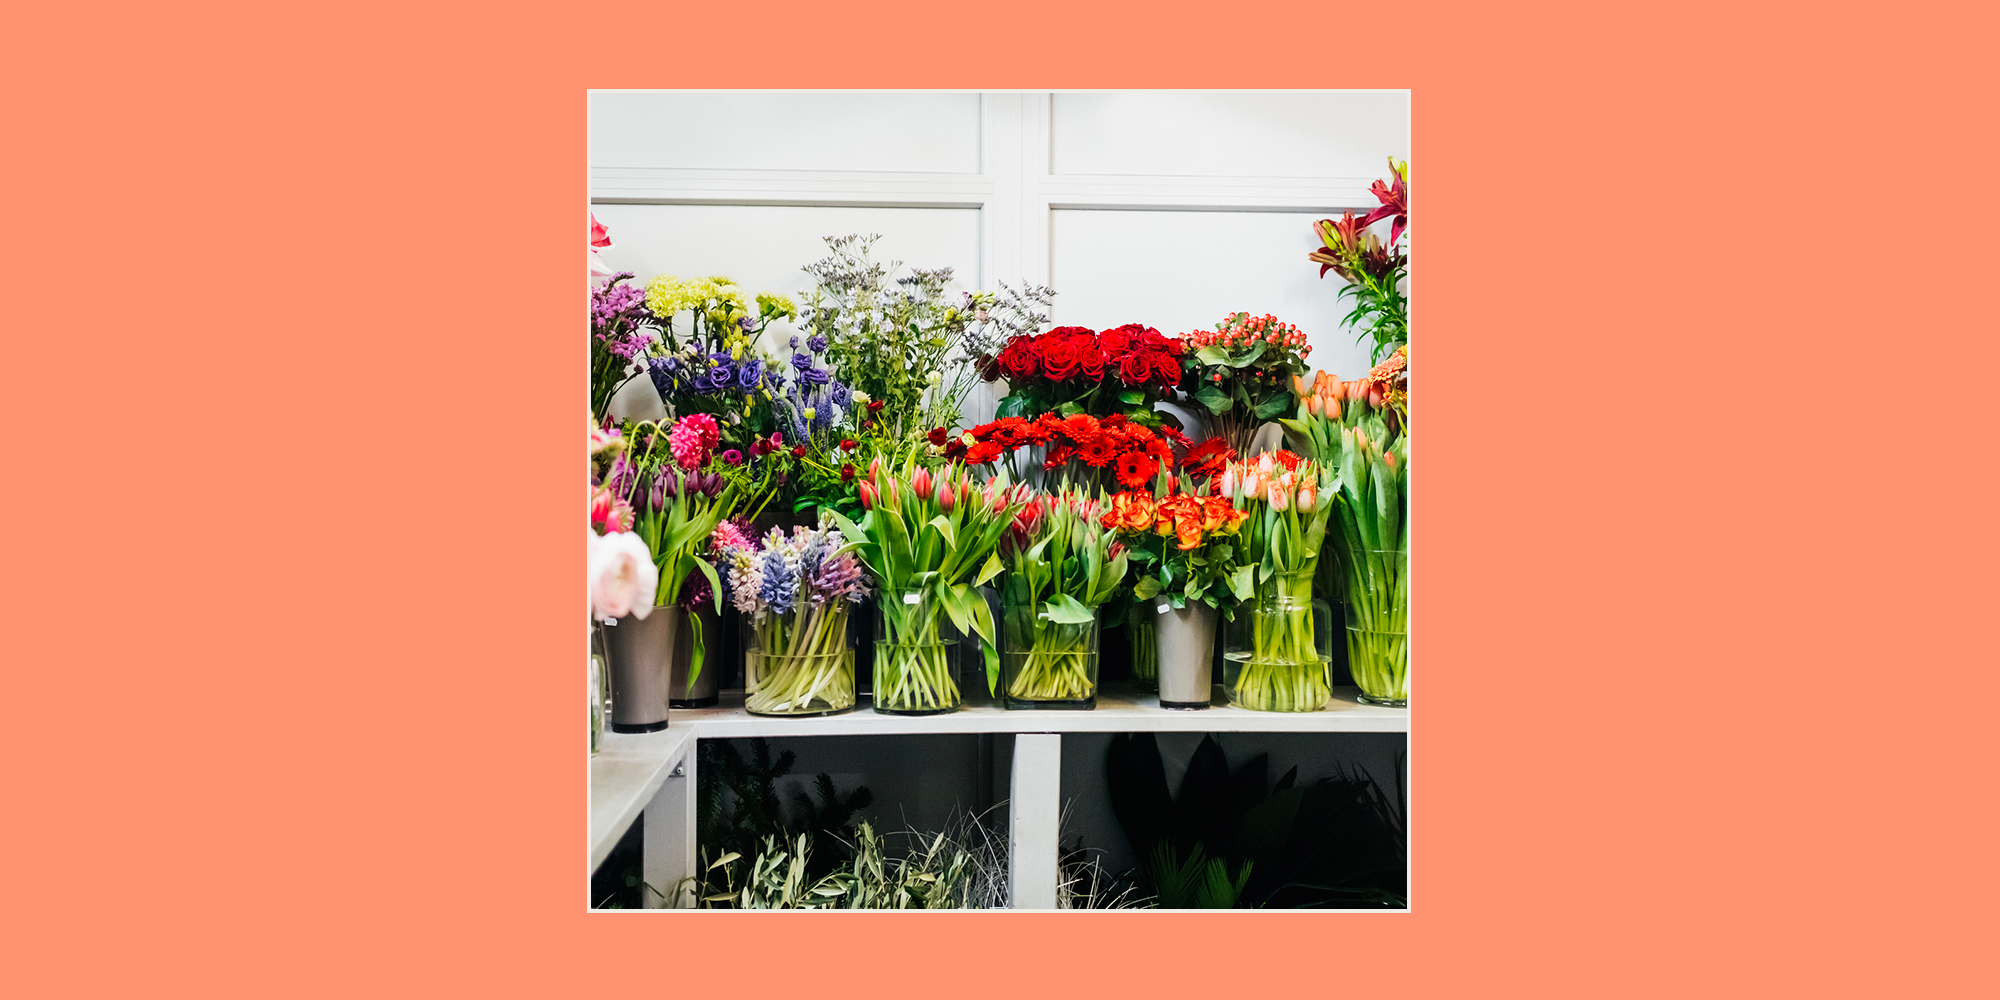 15 Best Online Flower Delivery Services 2021